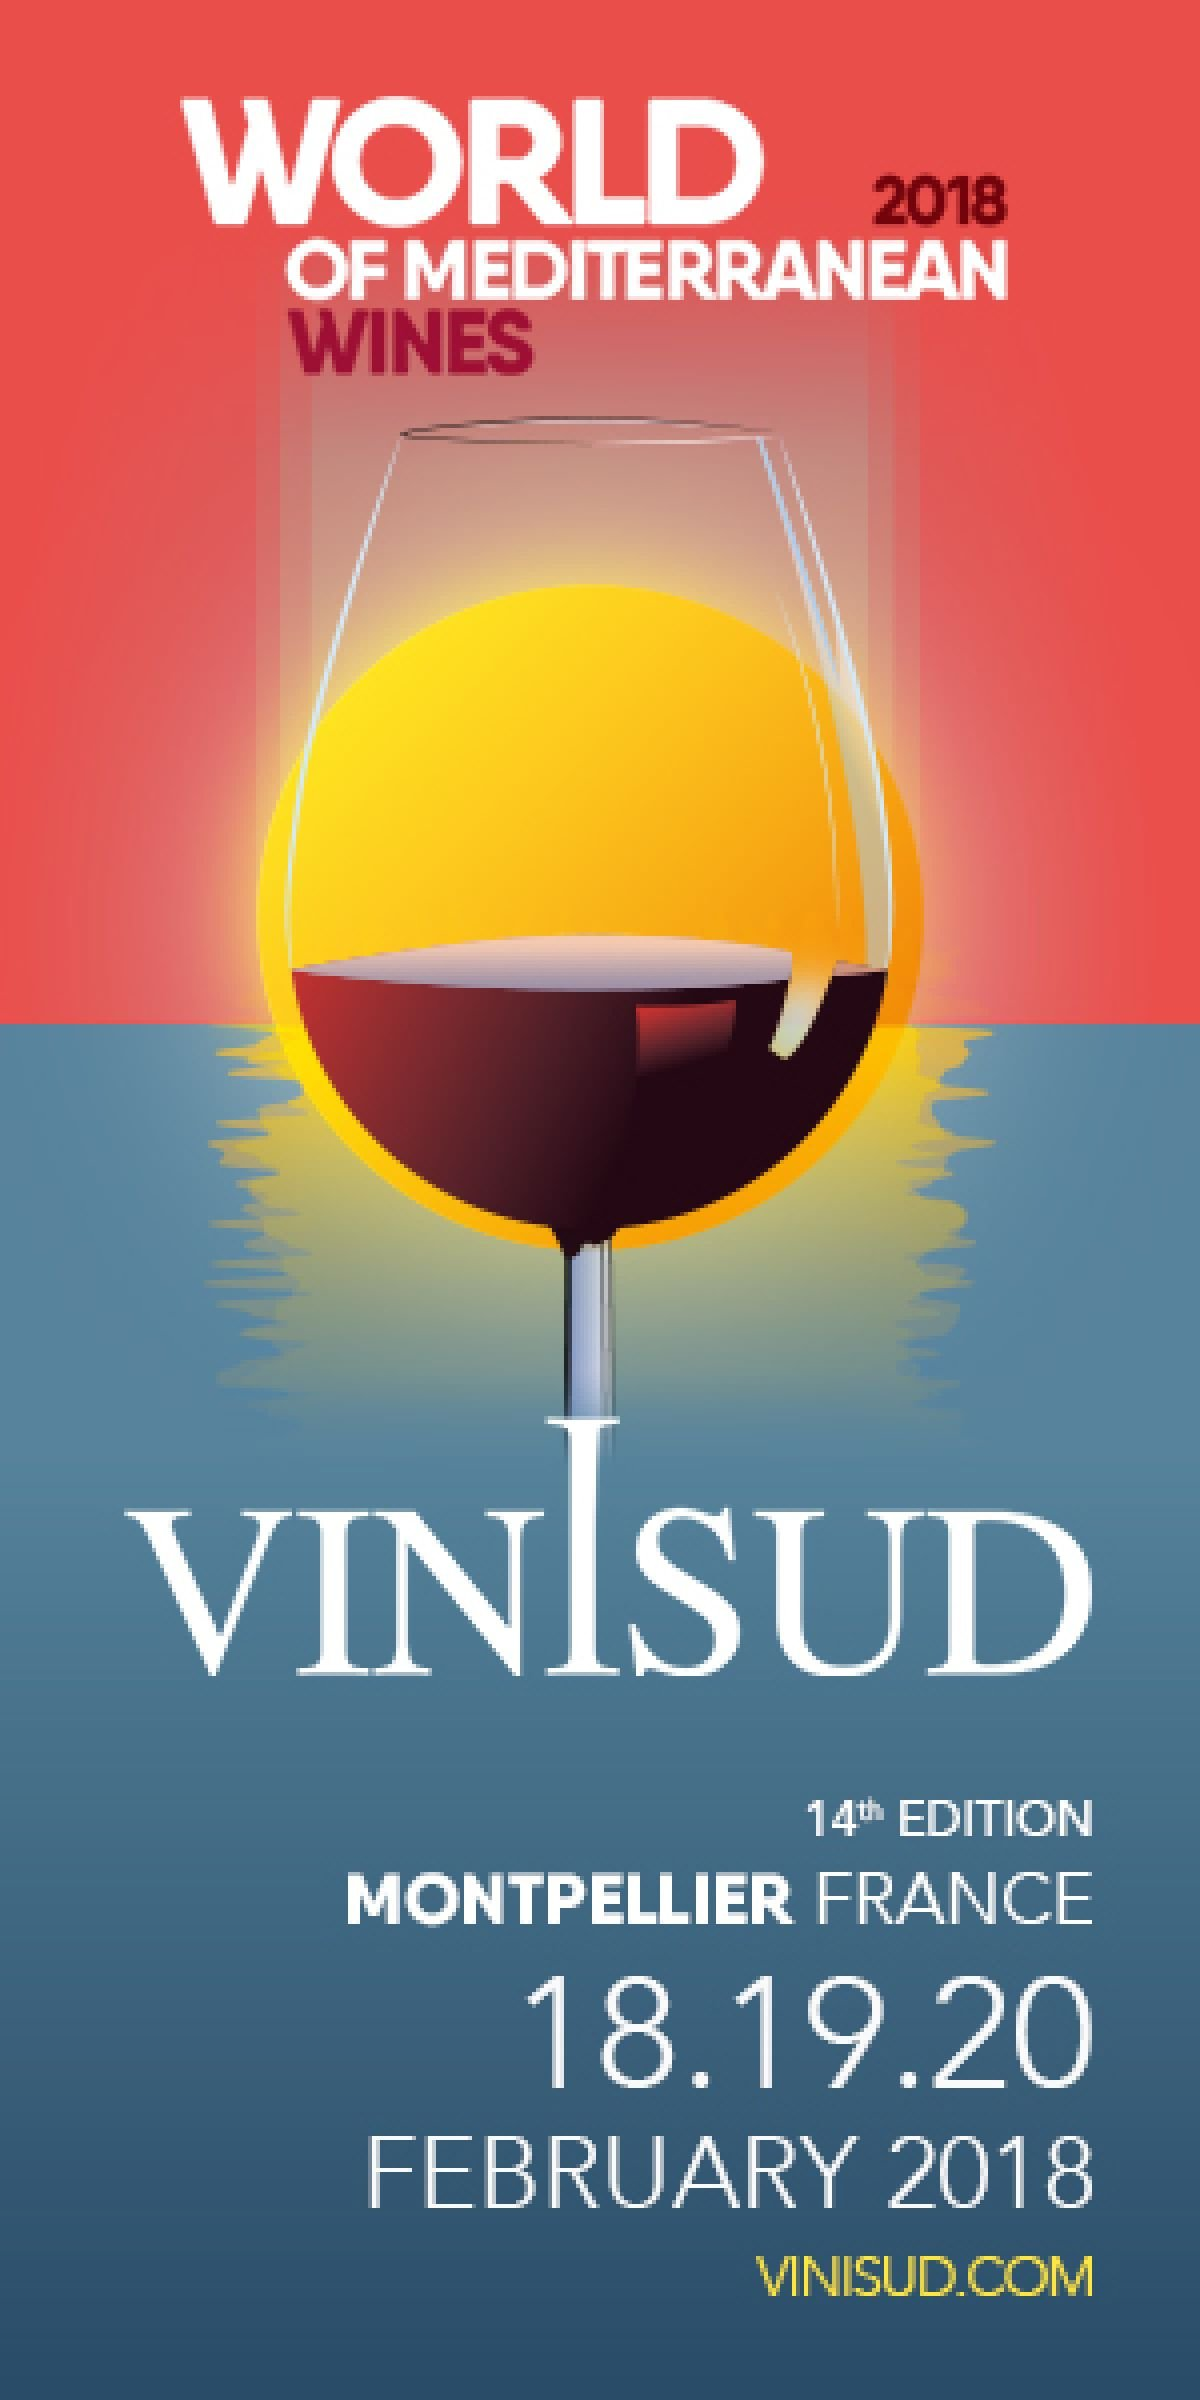 Take your place at Vinisud 2018